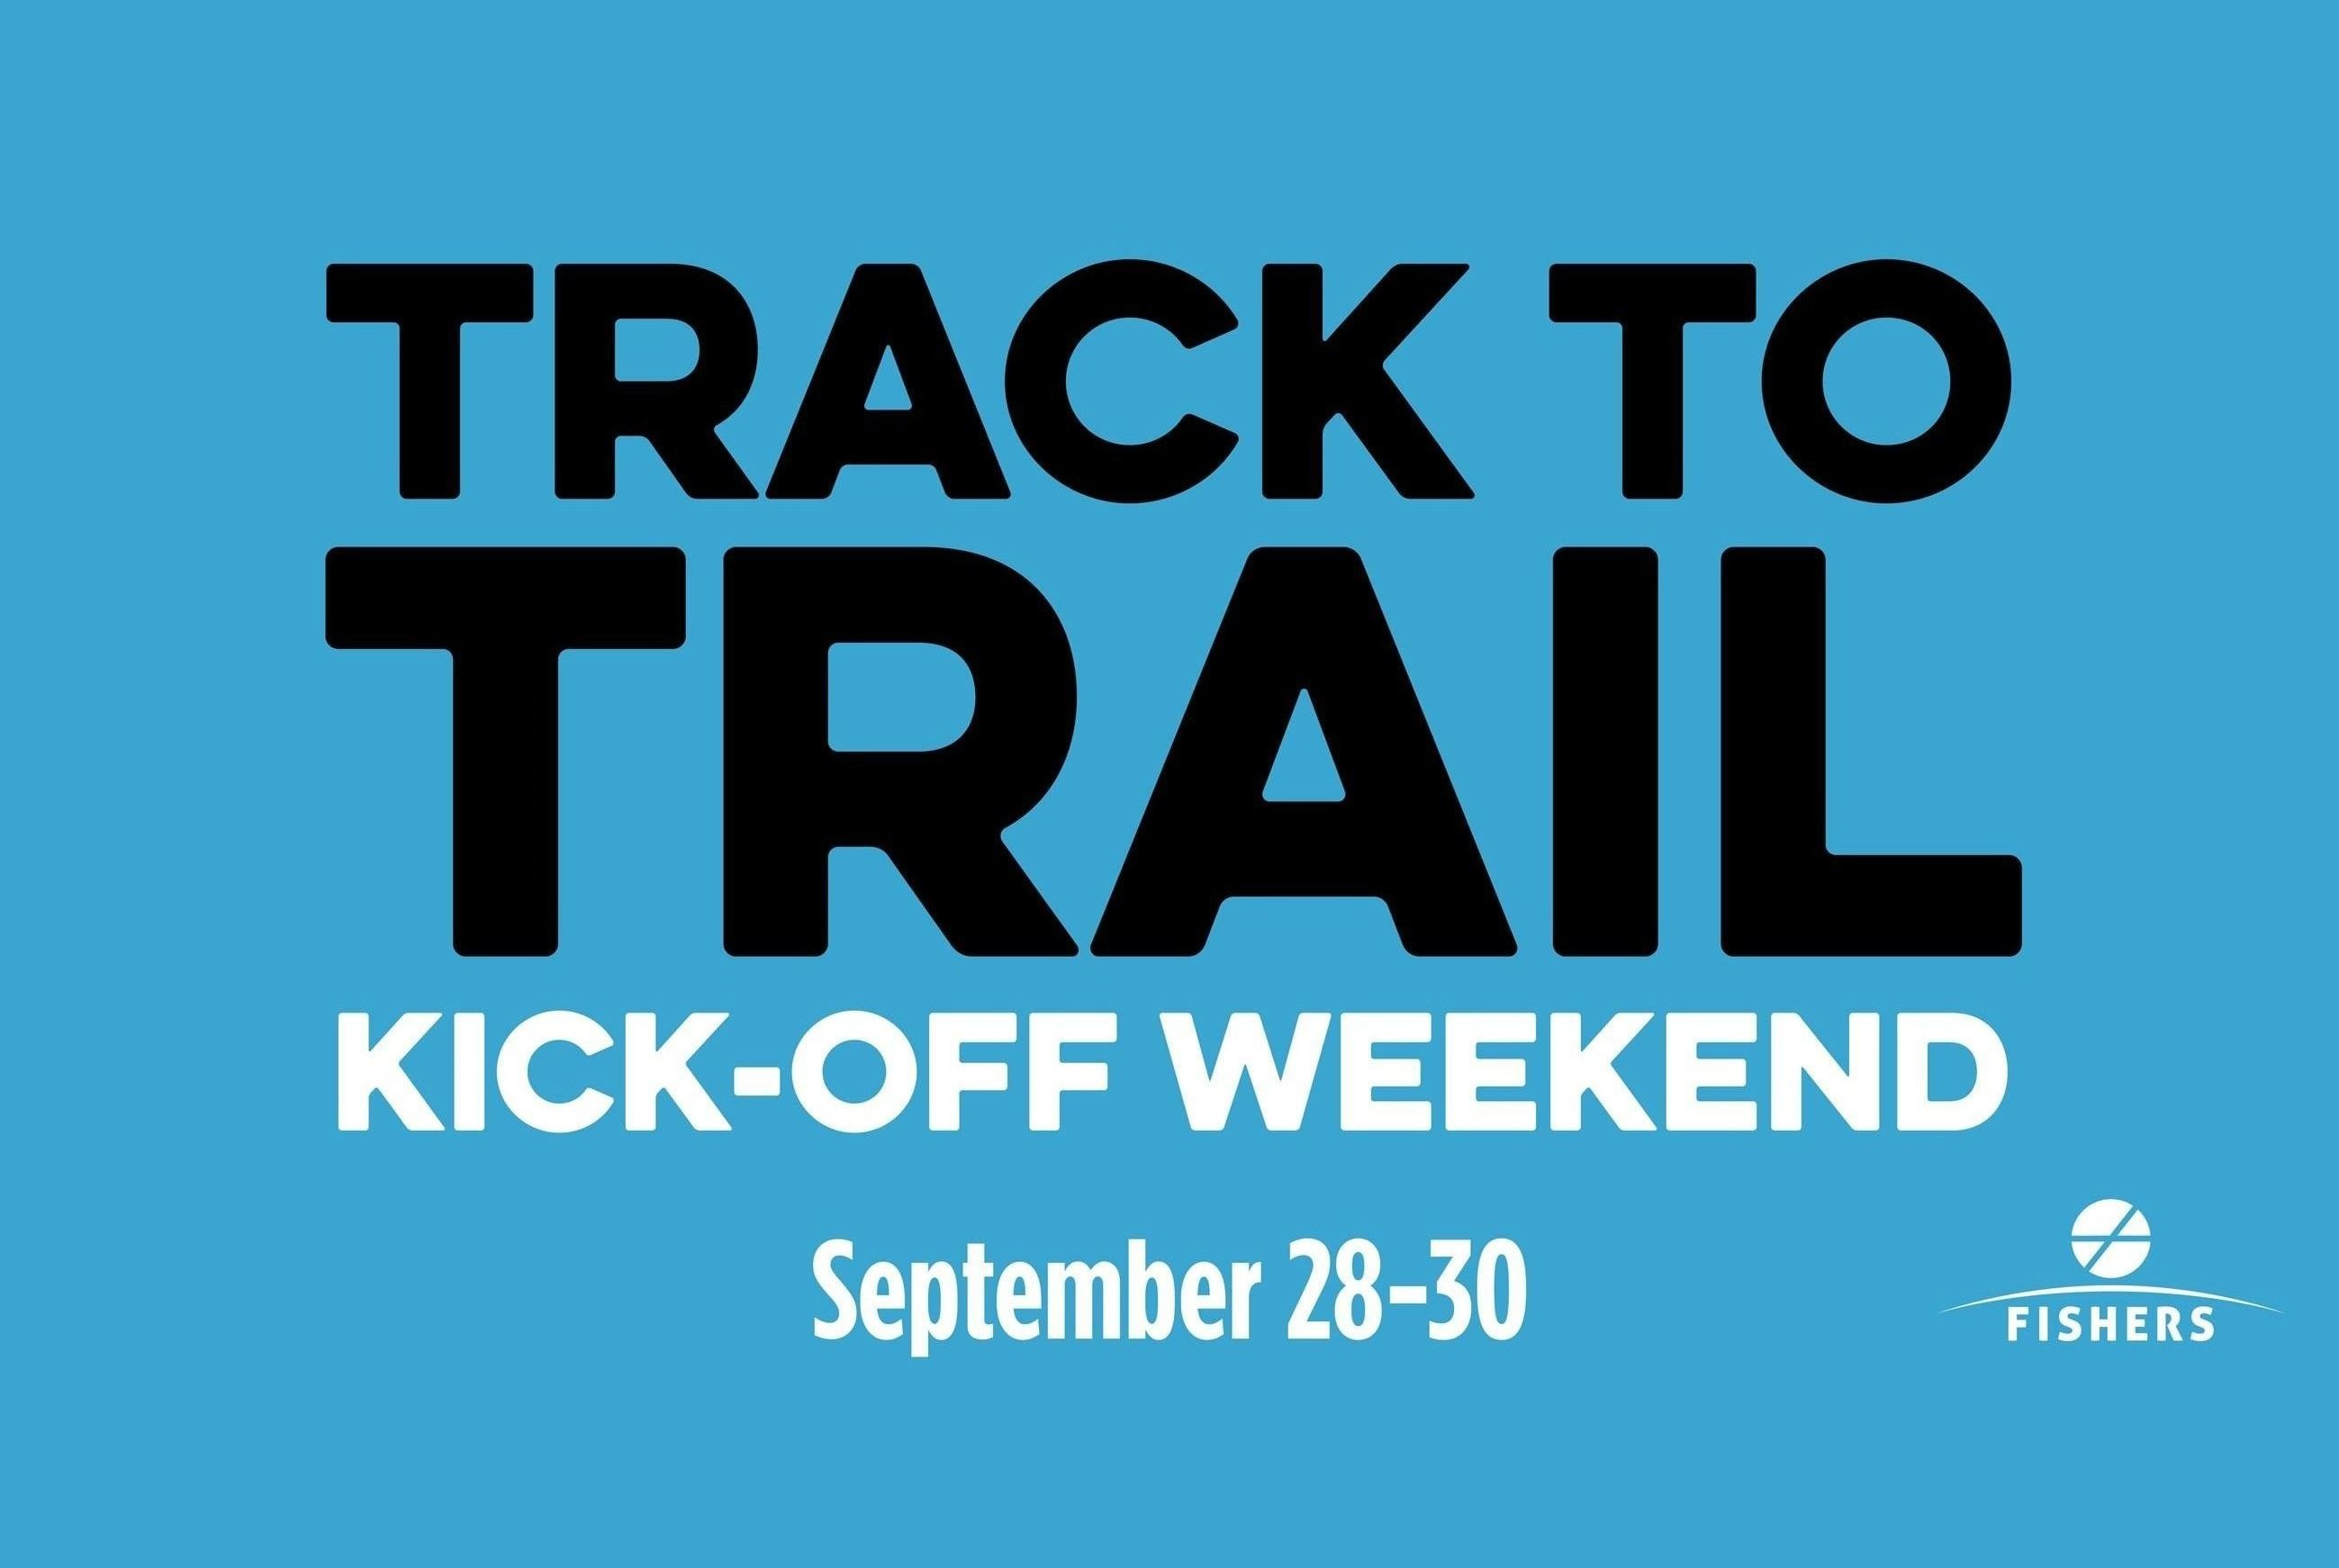 track to trail kick-off weekend, sept. 28-30